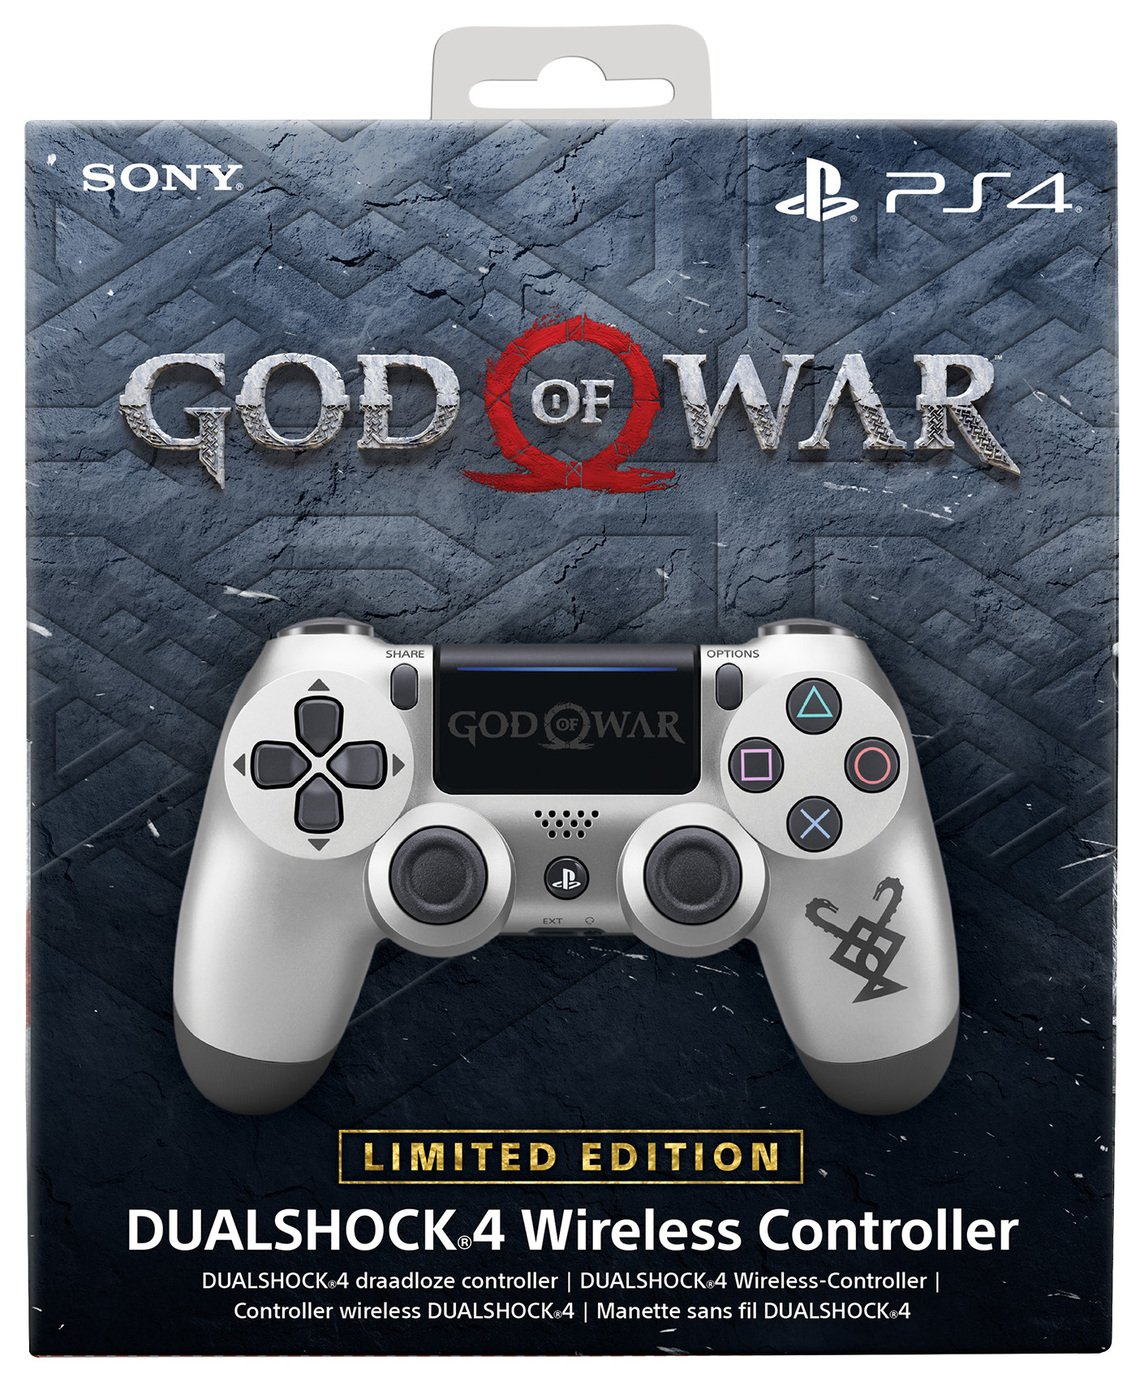 Image of Limited Ed God of War PS4 Dualshock 4 Wireless Controller